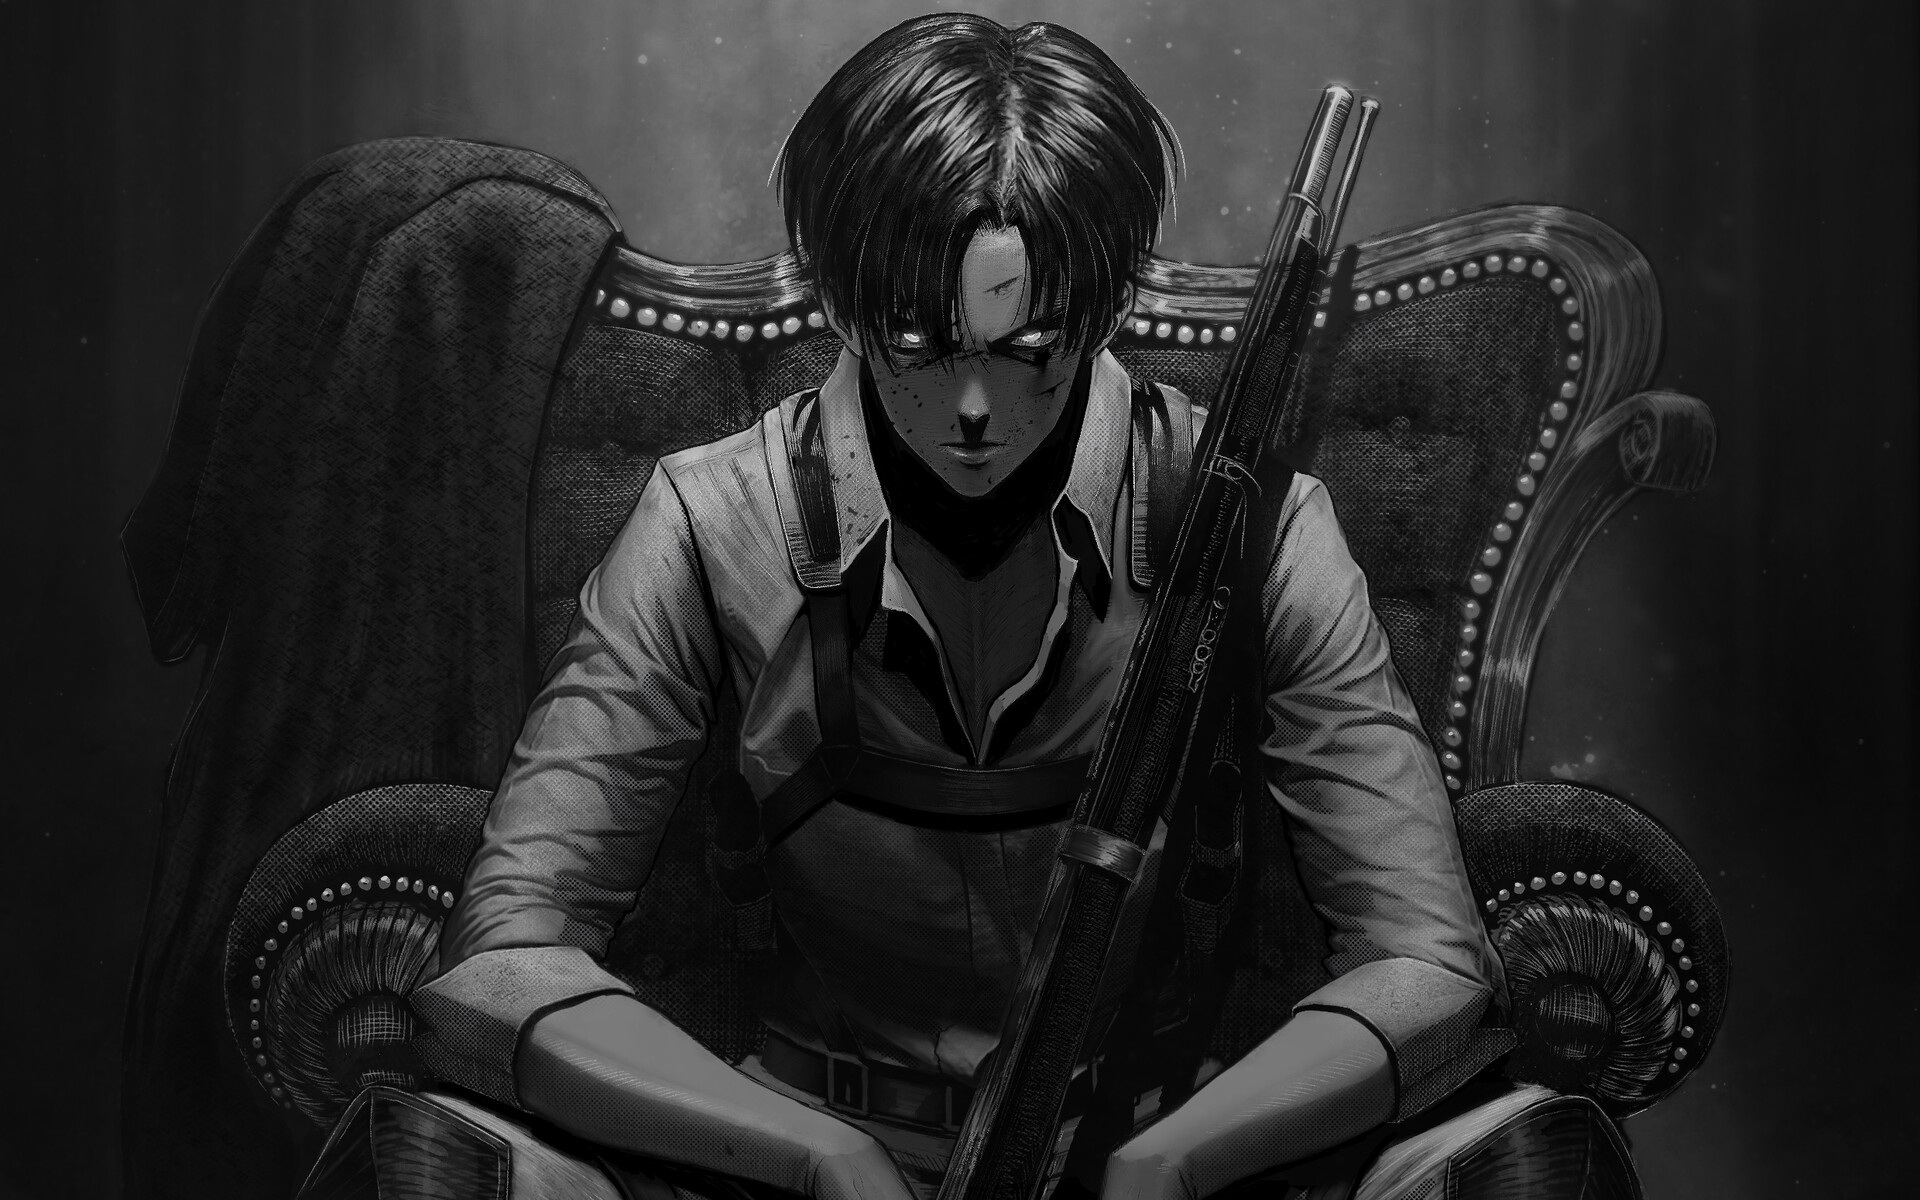 Wallpaper Of Anime Levi Ackerman Gun Attack On Titan Levi Ackerman Wallpaper Hd 1920x1200 Download Hd Wallpaper Wallpapertip